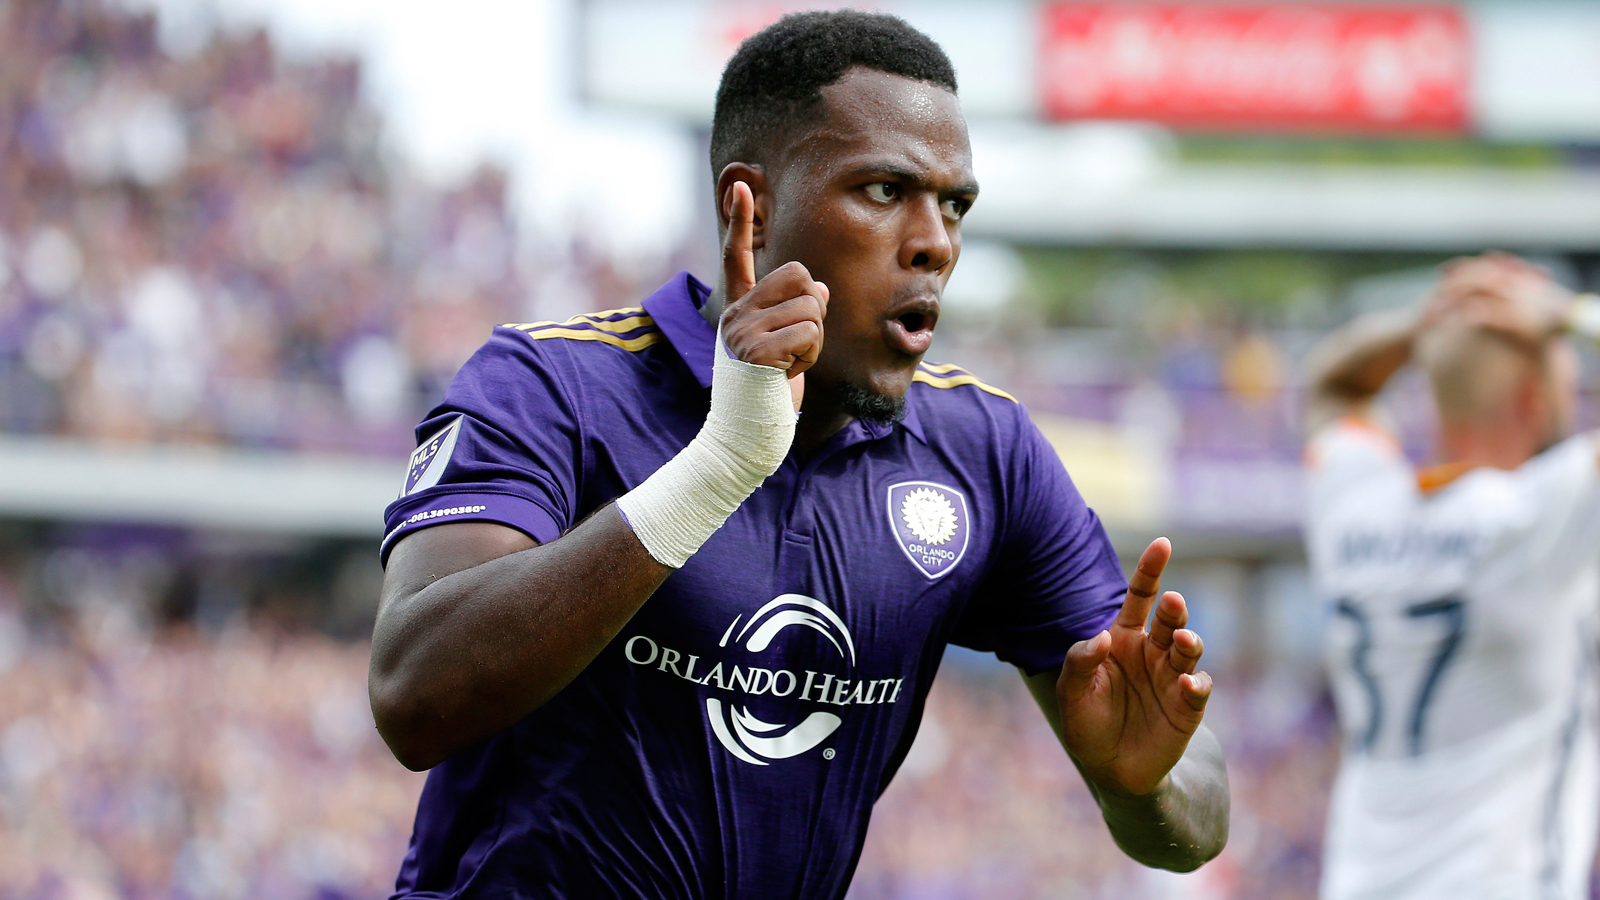 Cyle Larin scores in stoppage time, lifts Orlando City past LA Galaxy